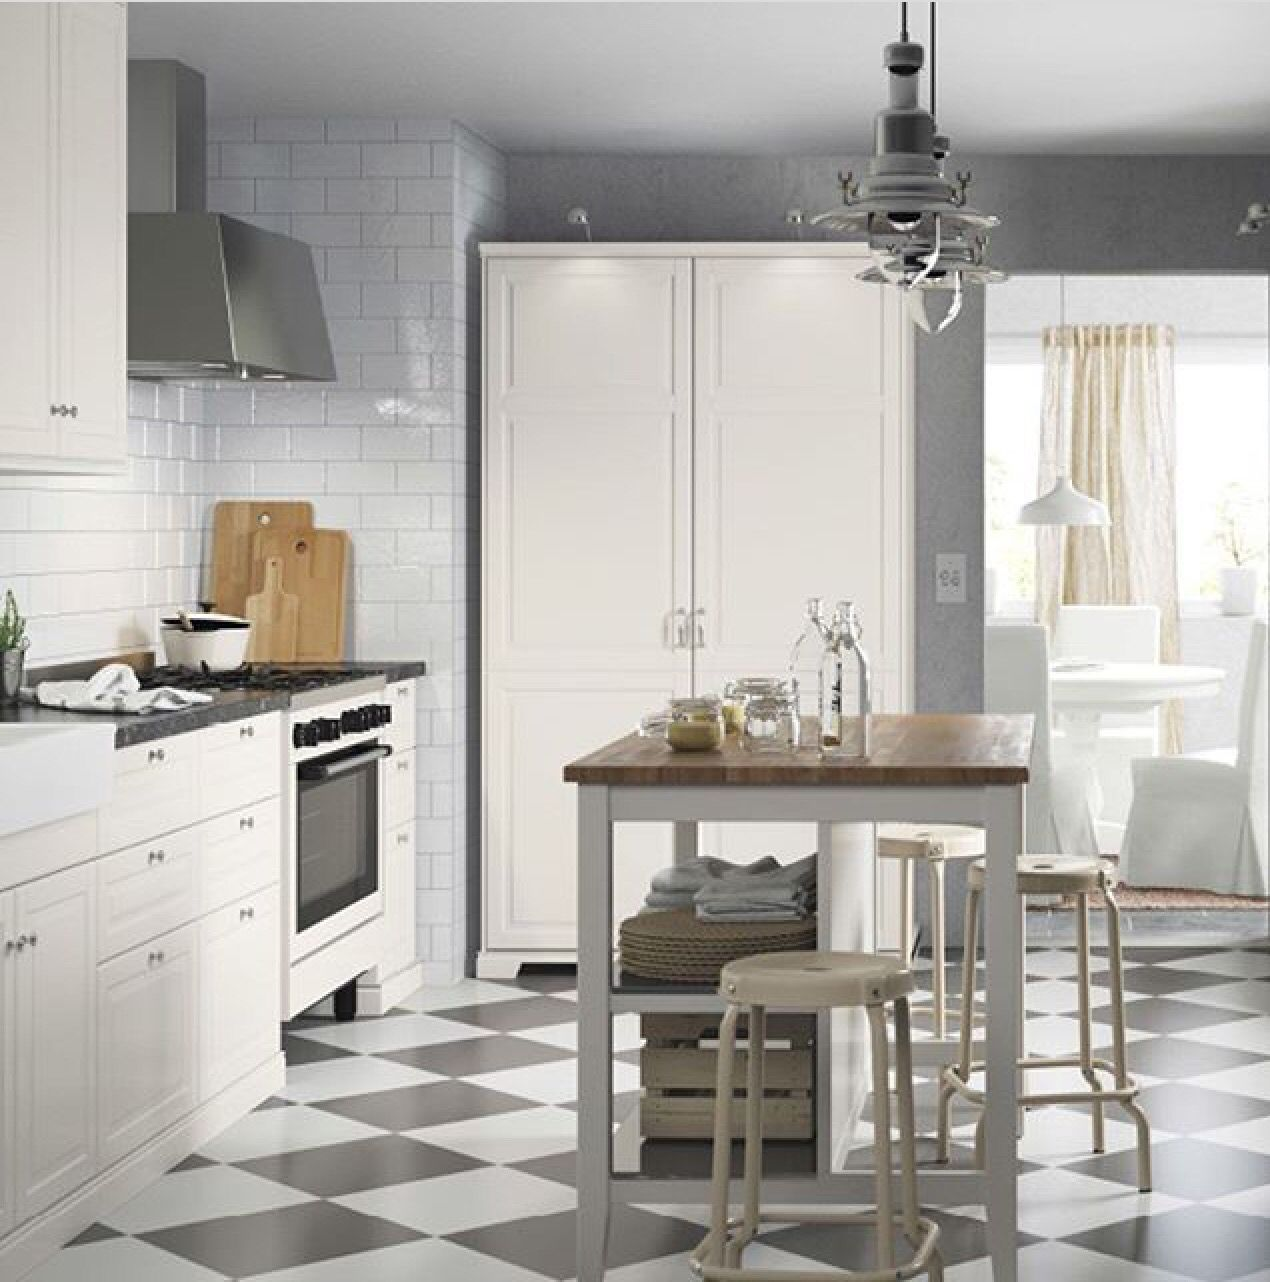 Ikea Suomi | Kitchen in bistrostyle | Pinterest | Kitchens